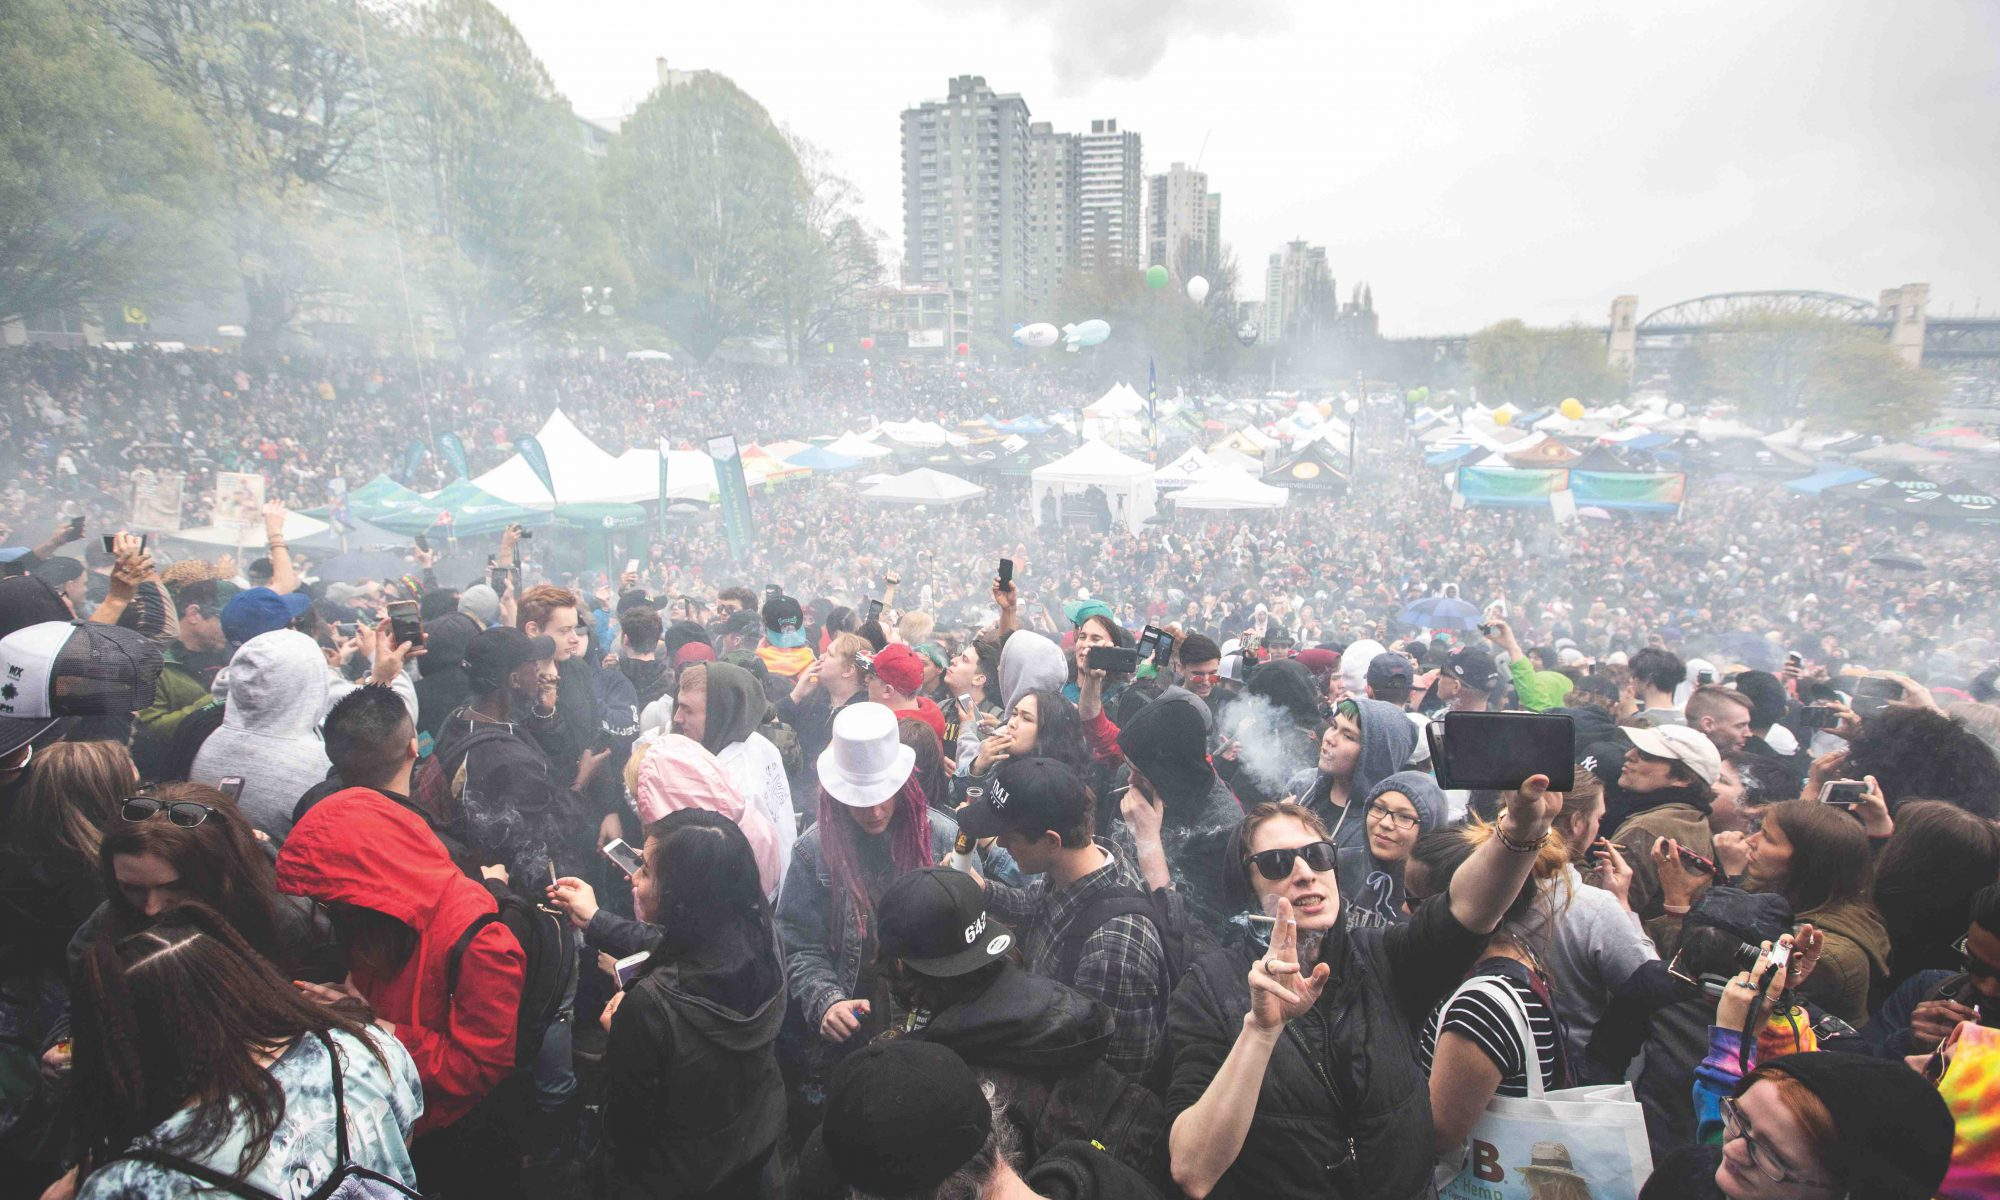 Marijuana users light up in unison at 4:20 p.m. on April 20, 2018 in Vancouver's Sunset Beach Park. Organizers say the annual 420 demonstration will continue despite the federal government commitment to legalize cannabis later this summer. Photo by Jesse Winter/StarMetro Toronto Star